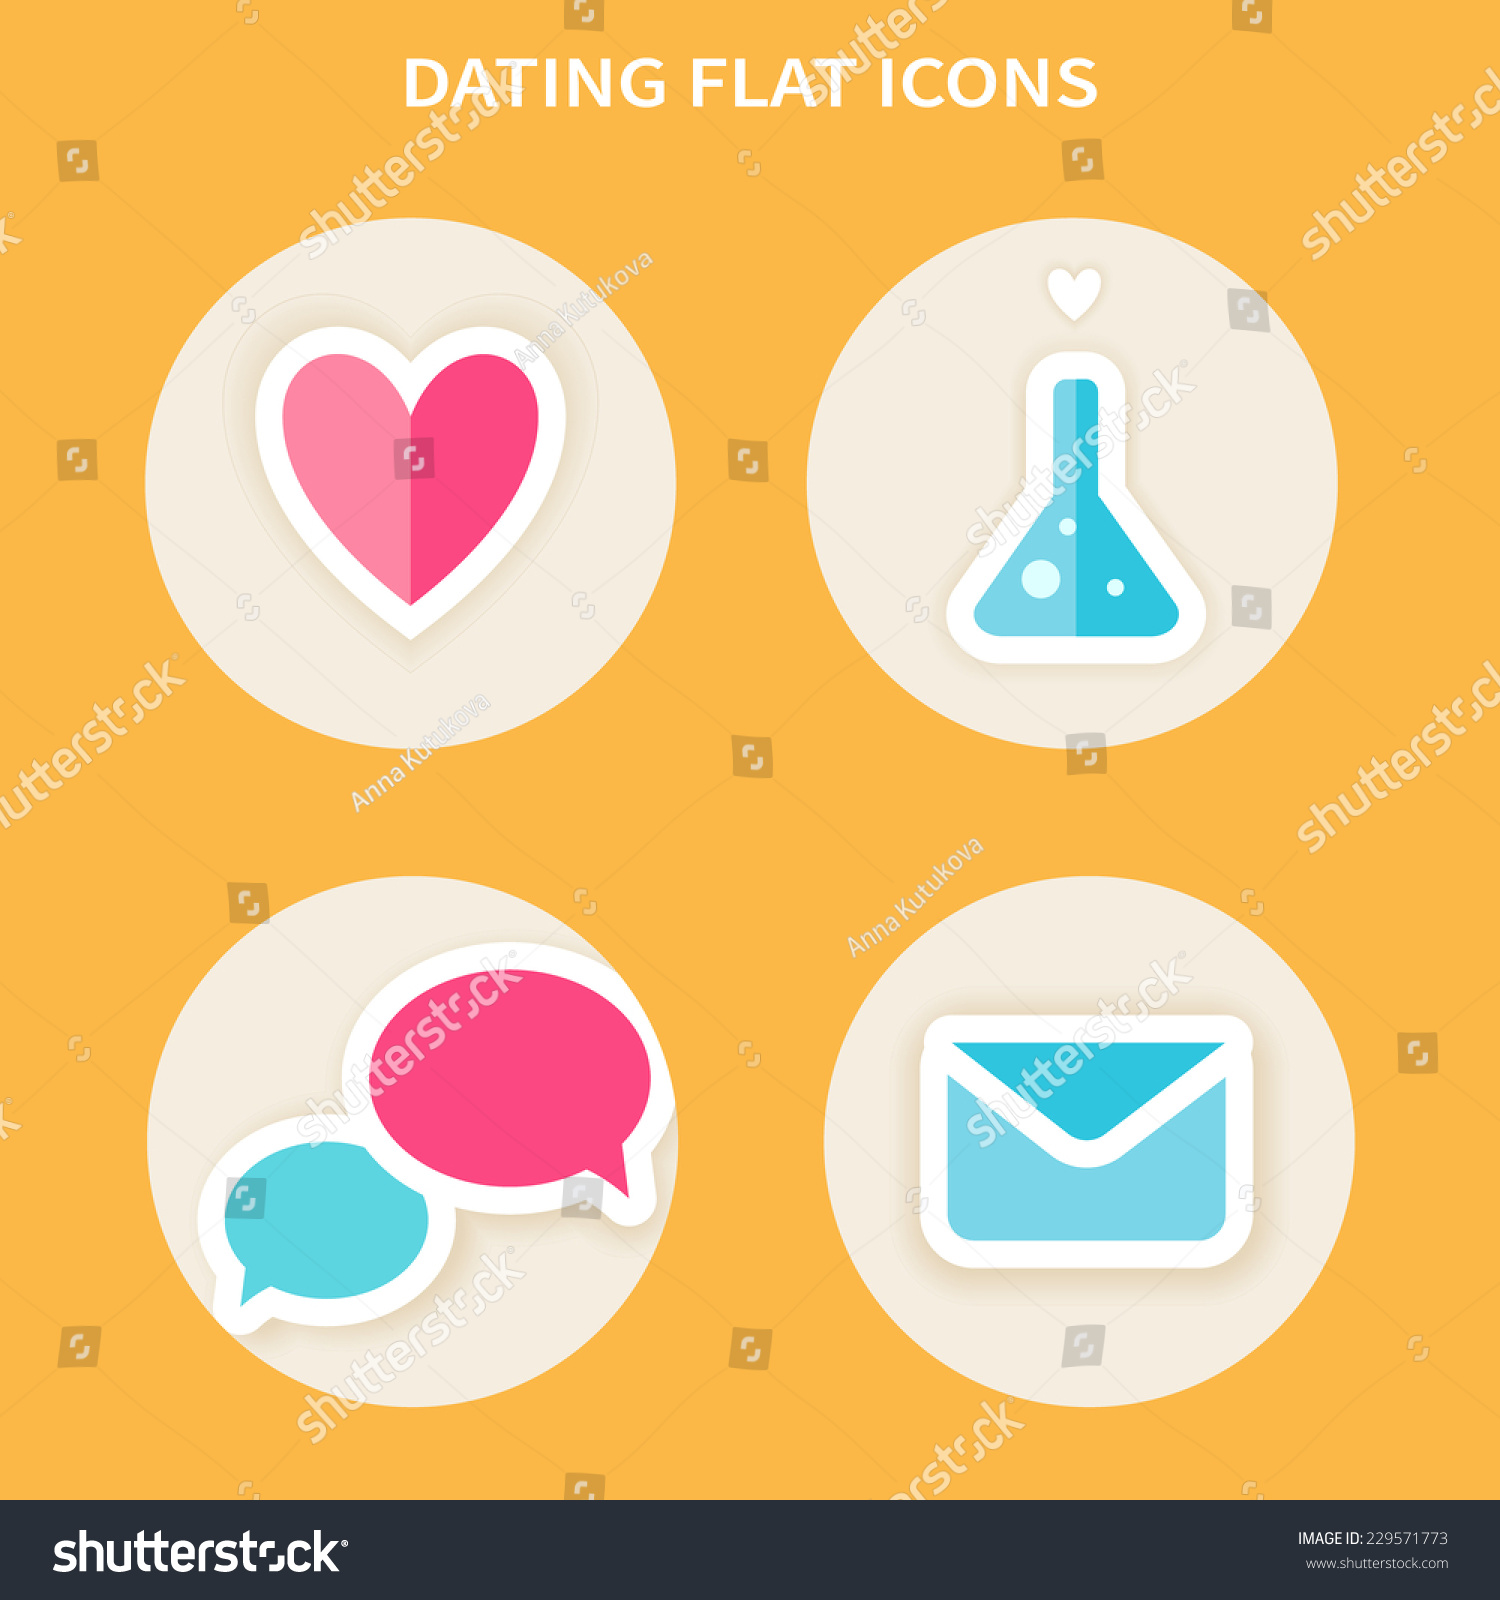 Yellow icon dating app